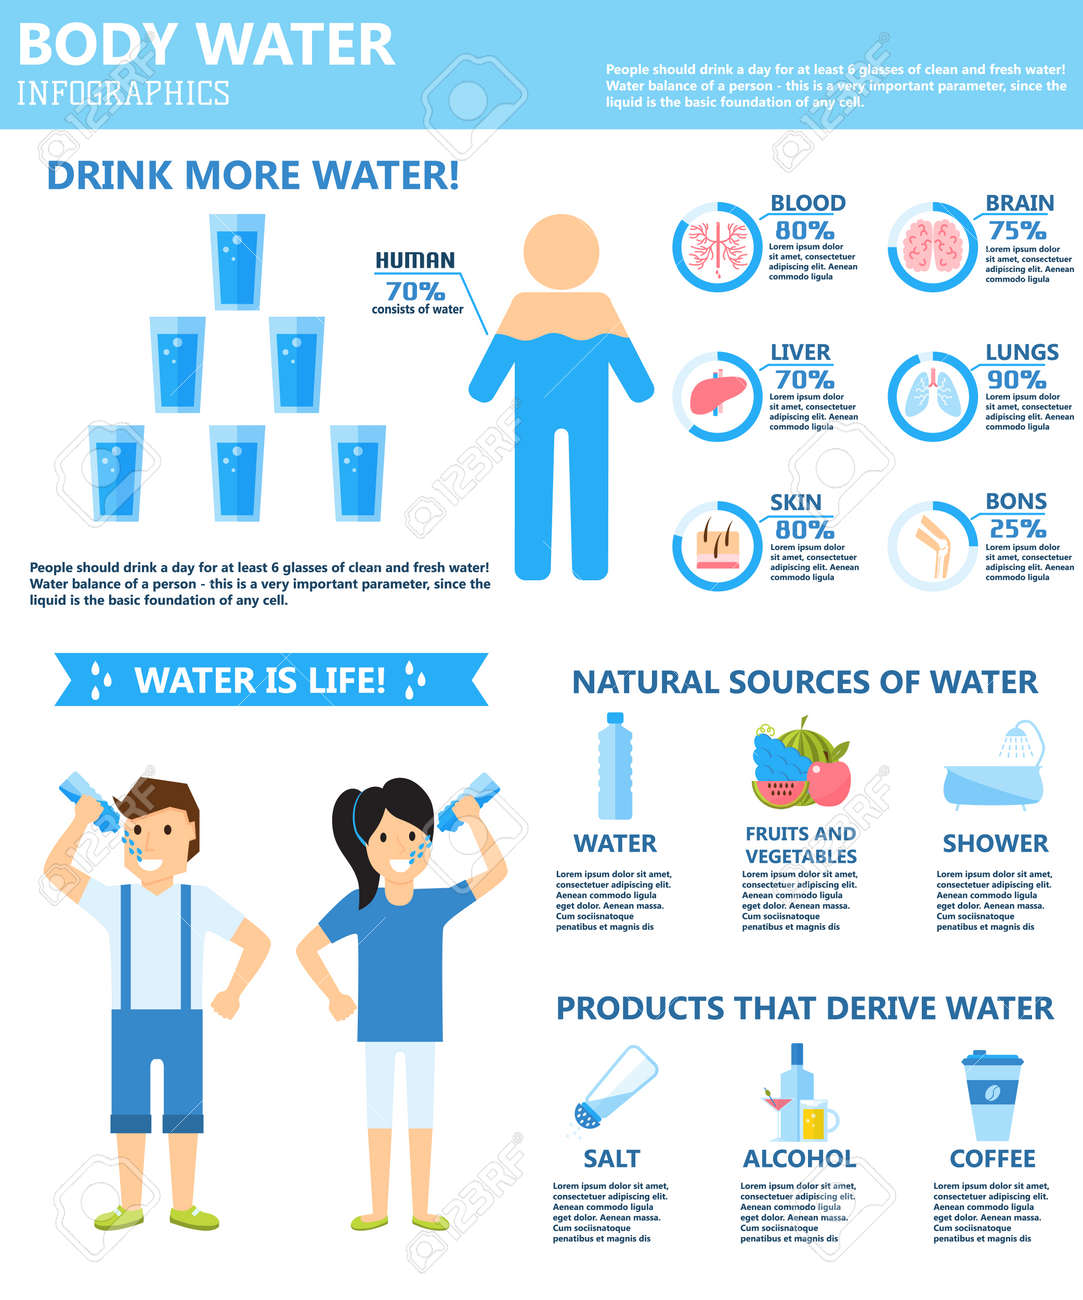 Water is life infographic idea poster liquid information and water infographic diagram banner. Water infographic statistics vector. Drink more body water infographics natural sources vector symbols. - 54656948